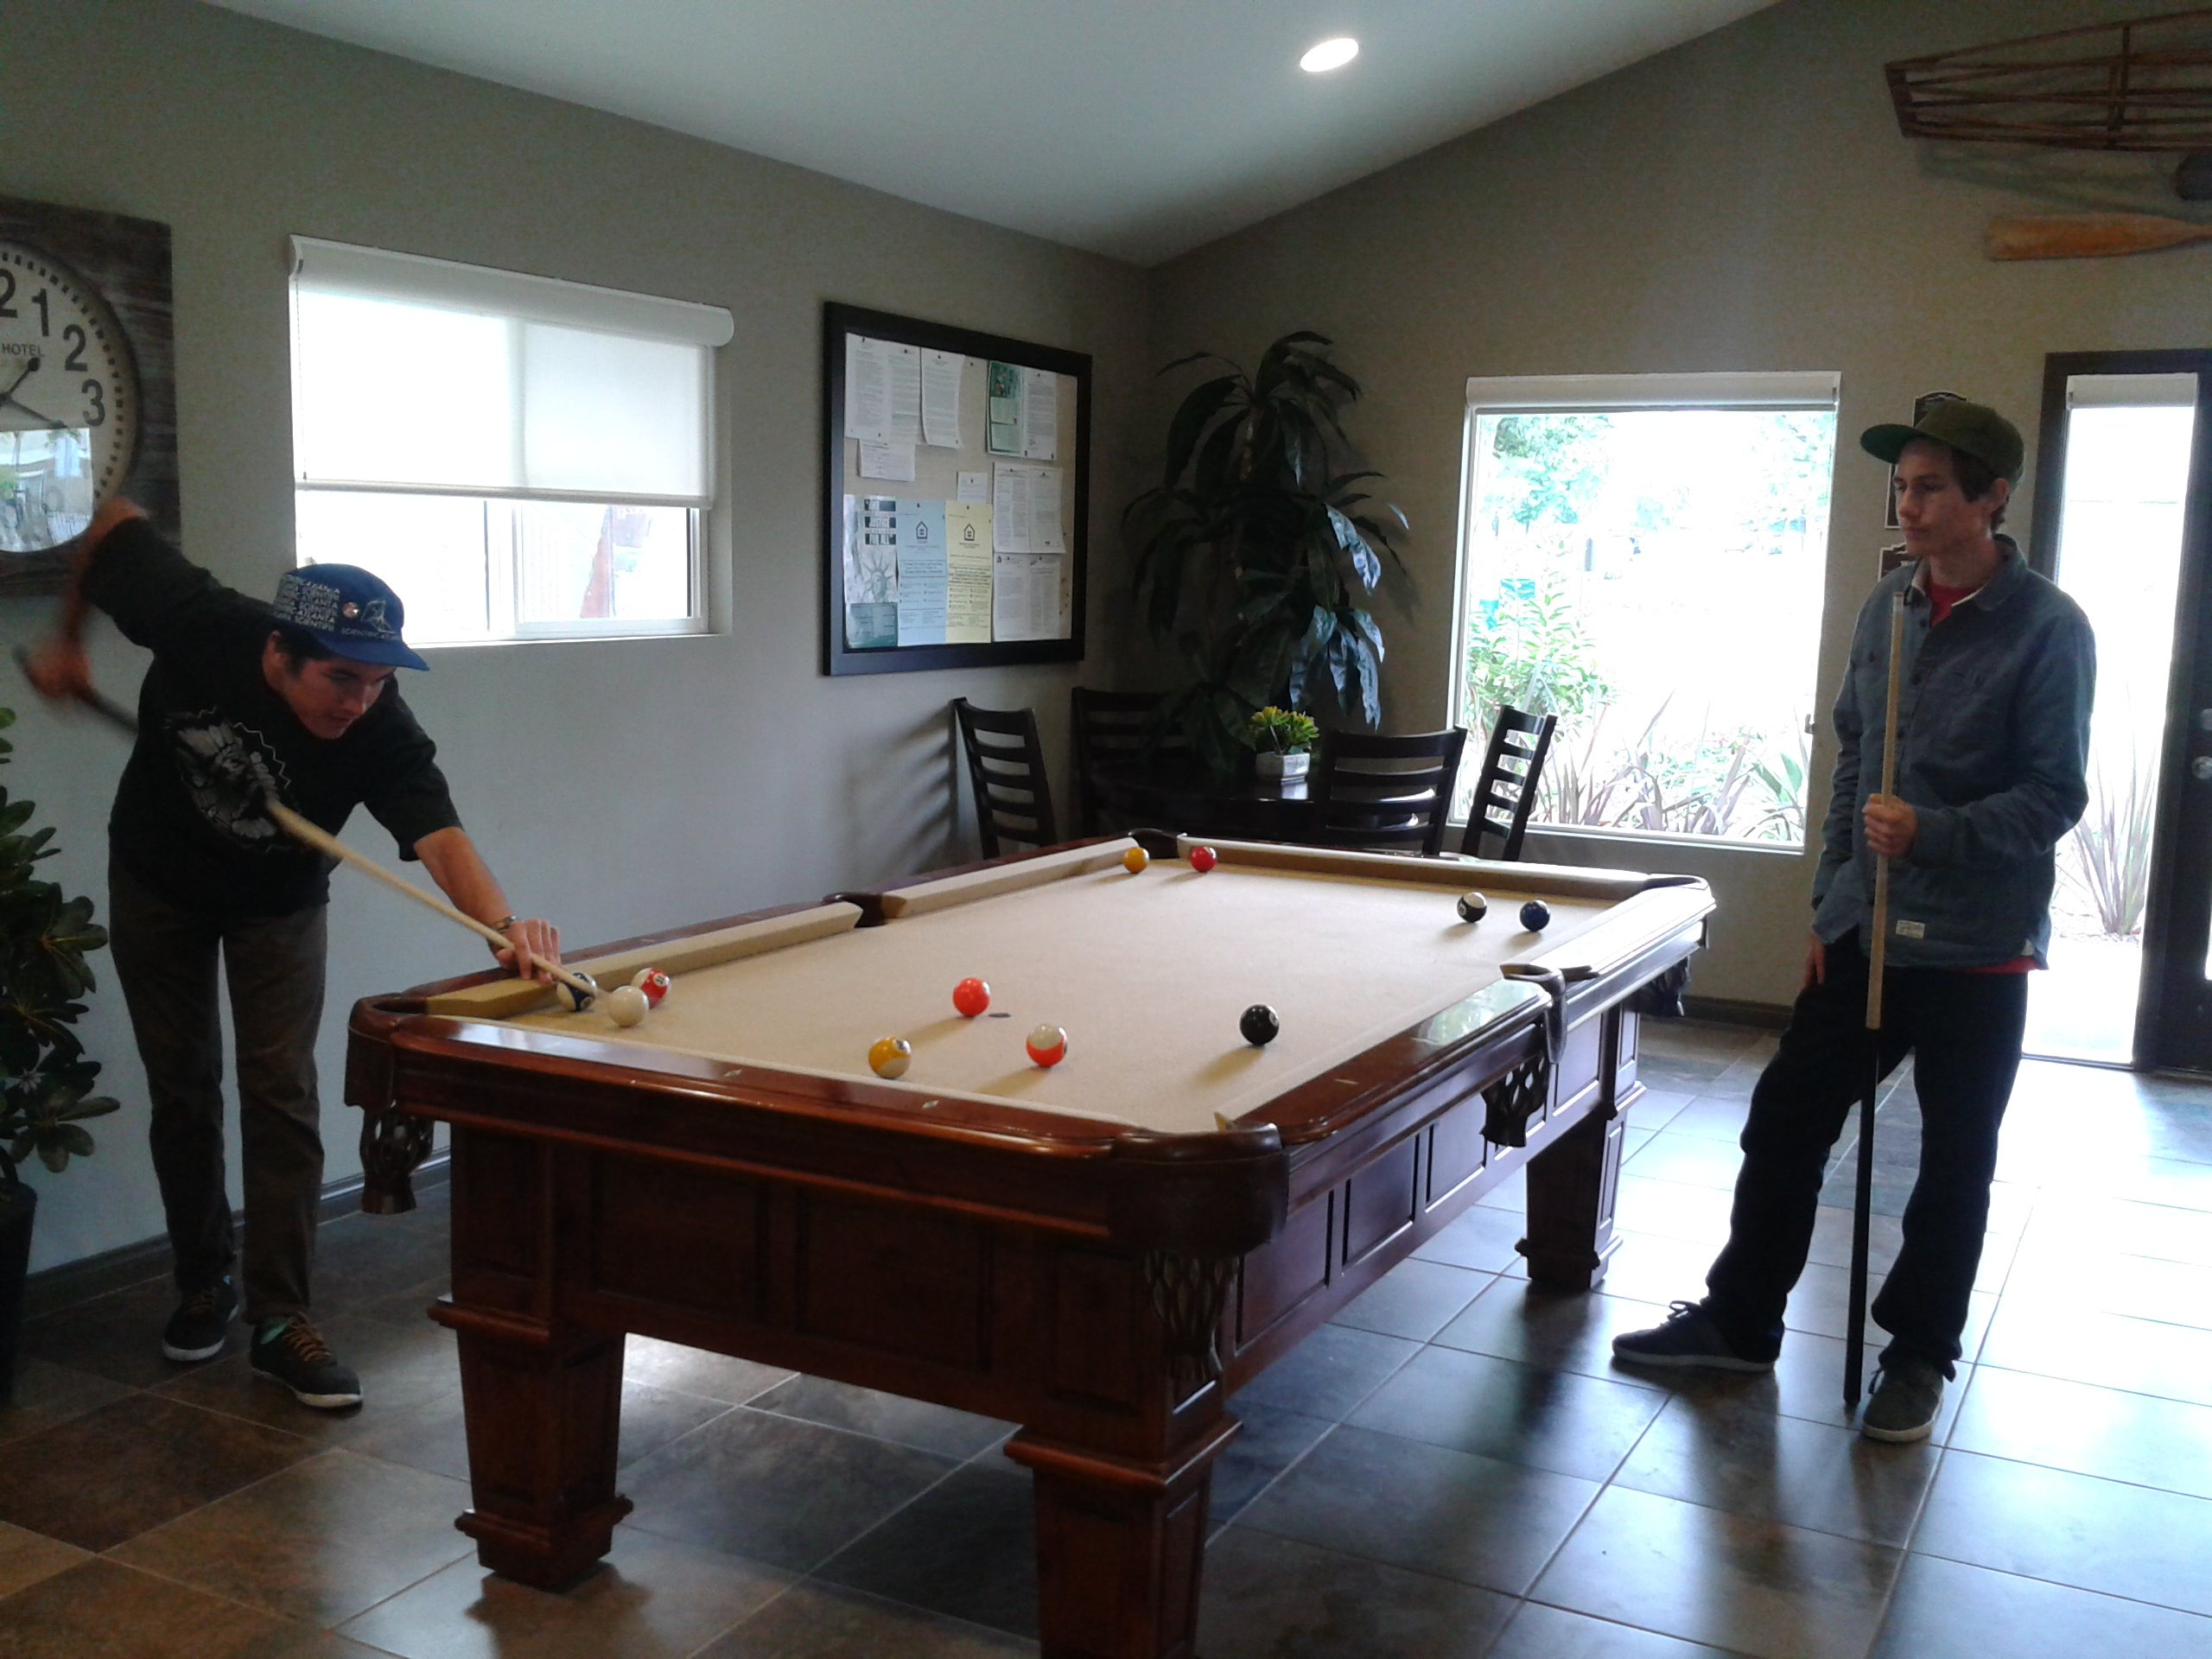 """The installment of the fine game of billiards has made the management office a real shot to the corner pocket.""